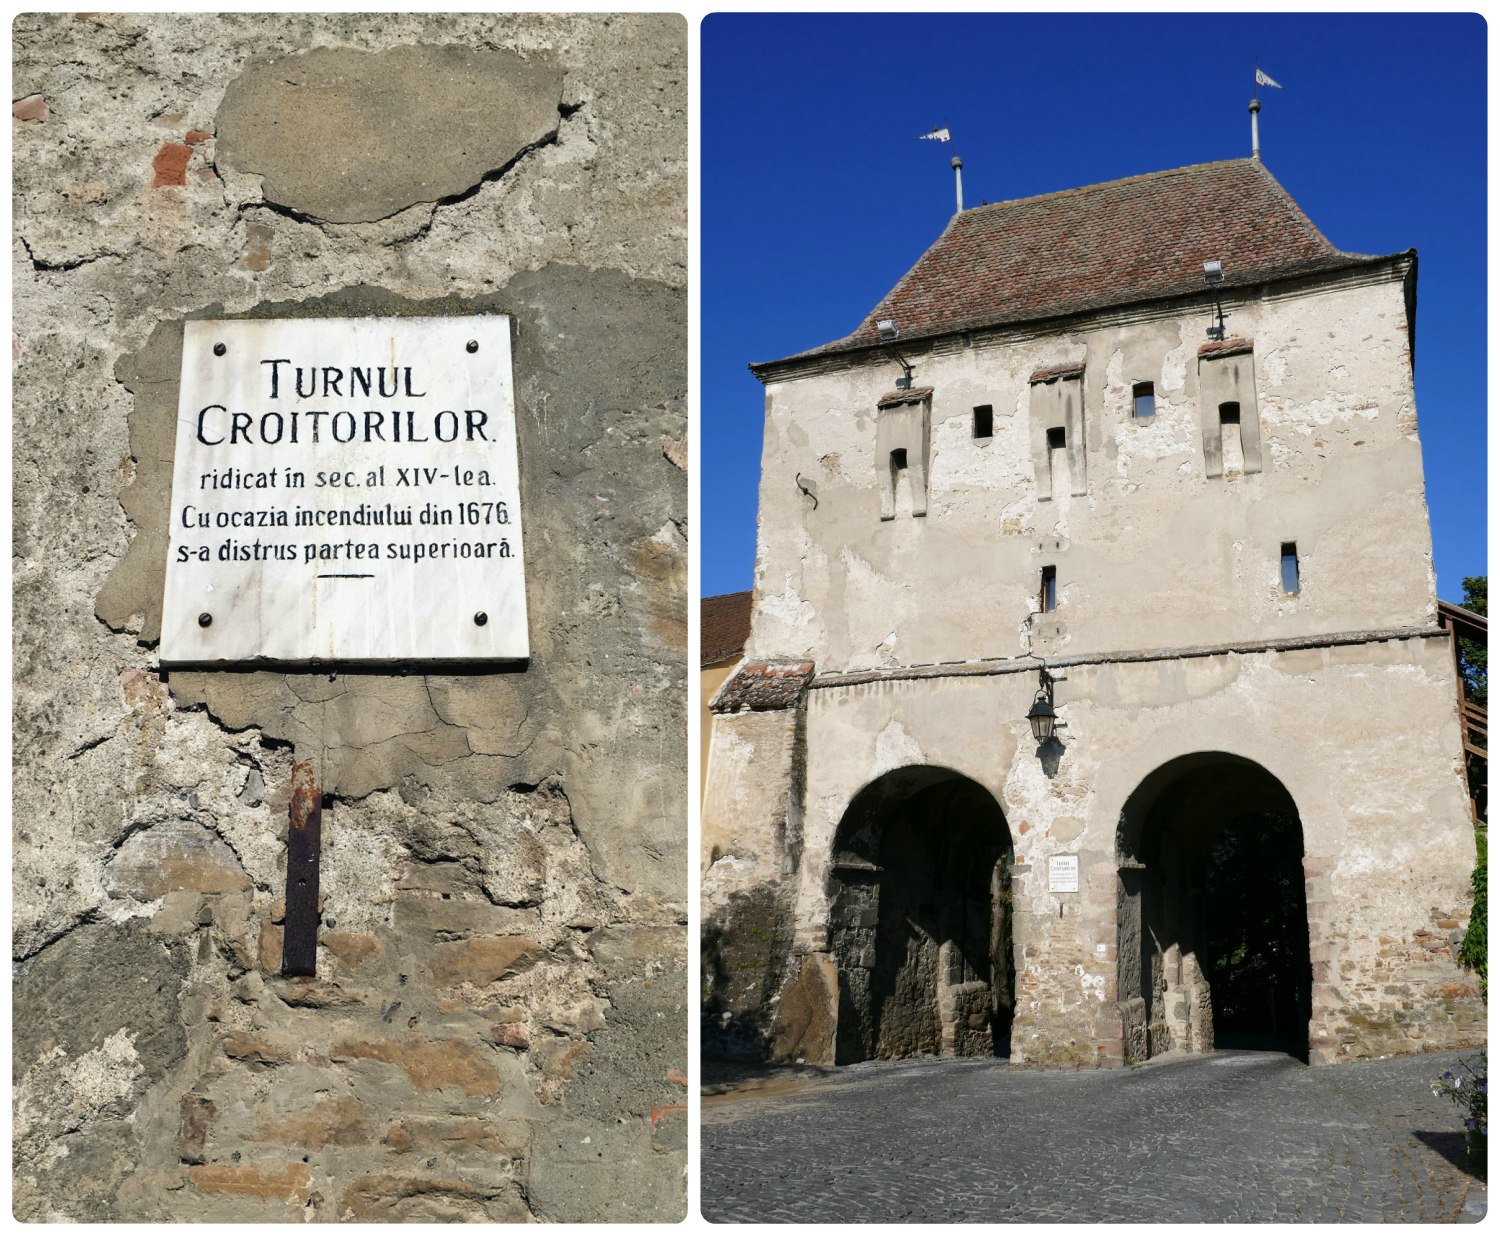 The Tailors' Tower was unique in that it had two passageways for entering and exiting the Sighisoara Citadel.